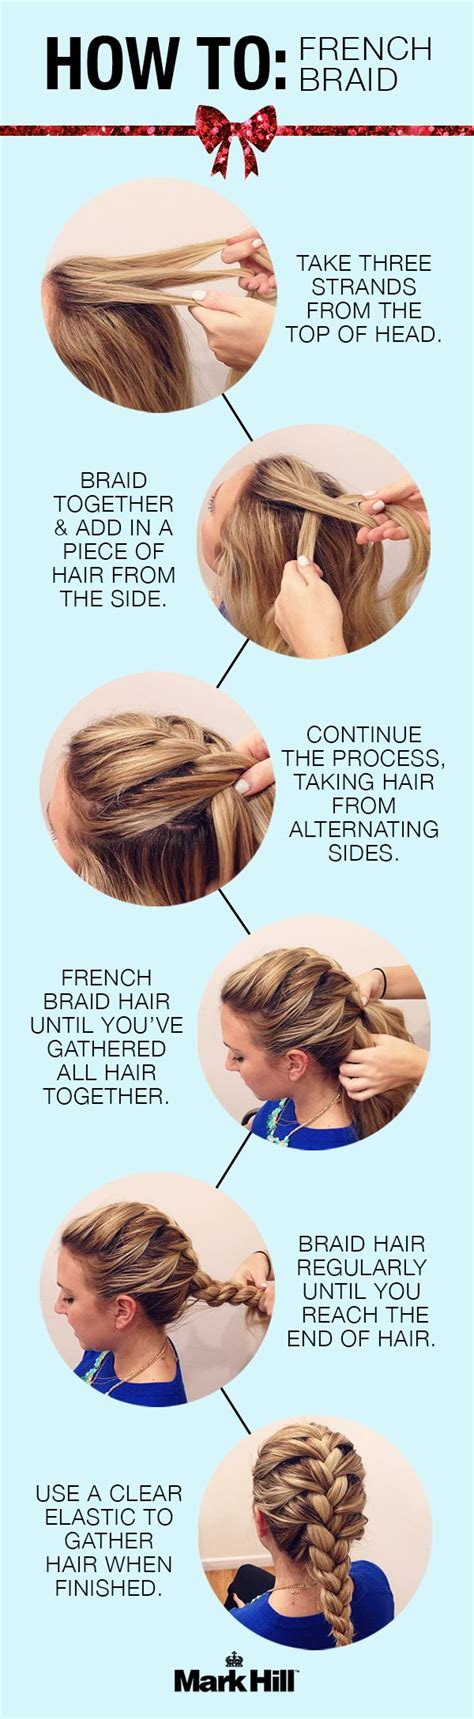 plaiting hair to grow it 17 best ideas about easy french braid on pinterest